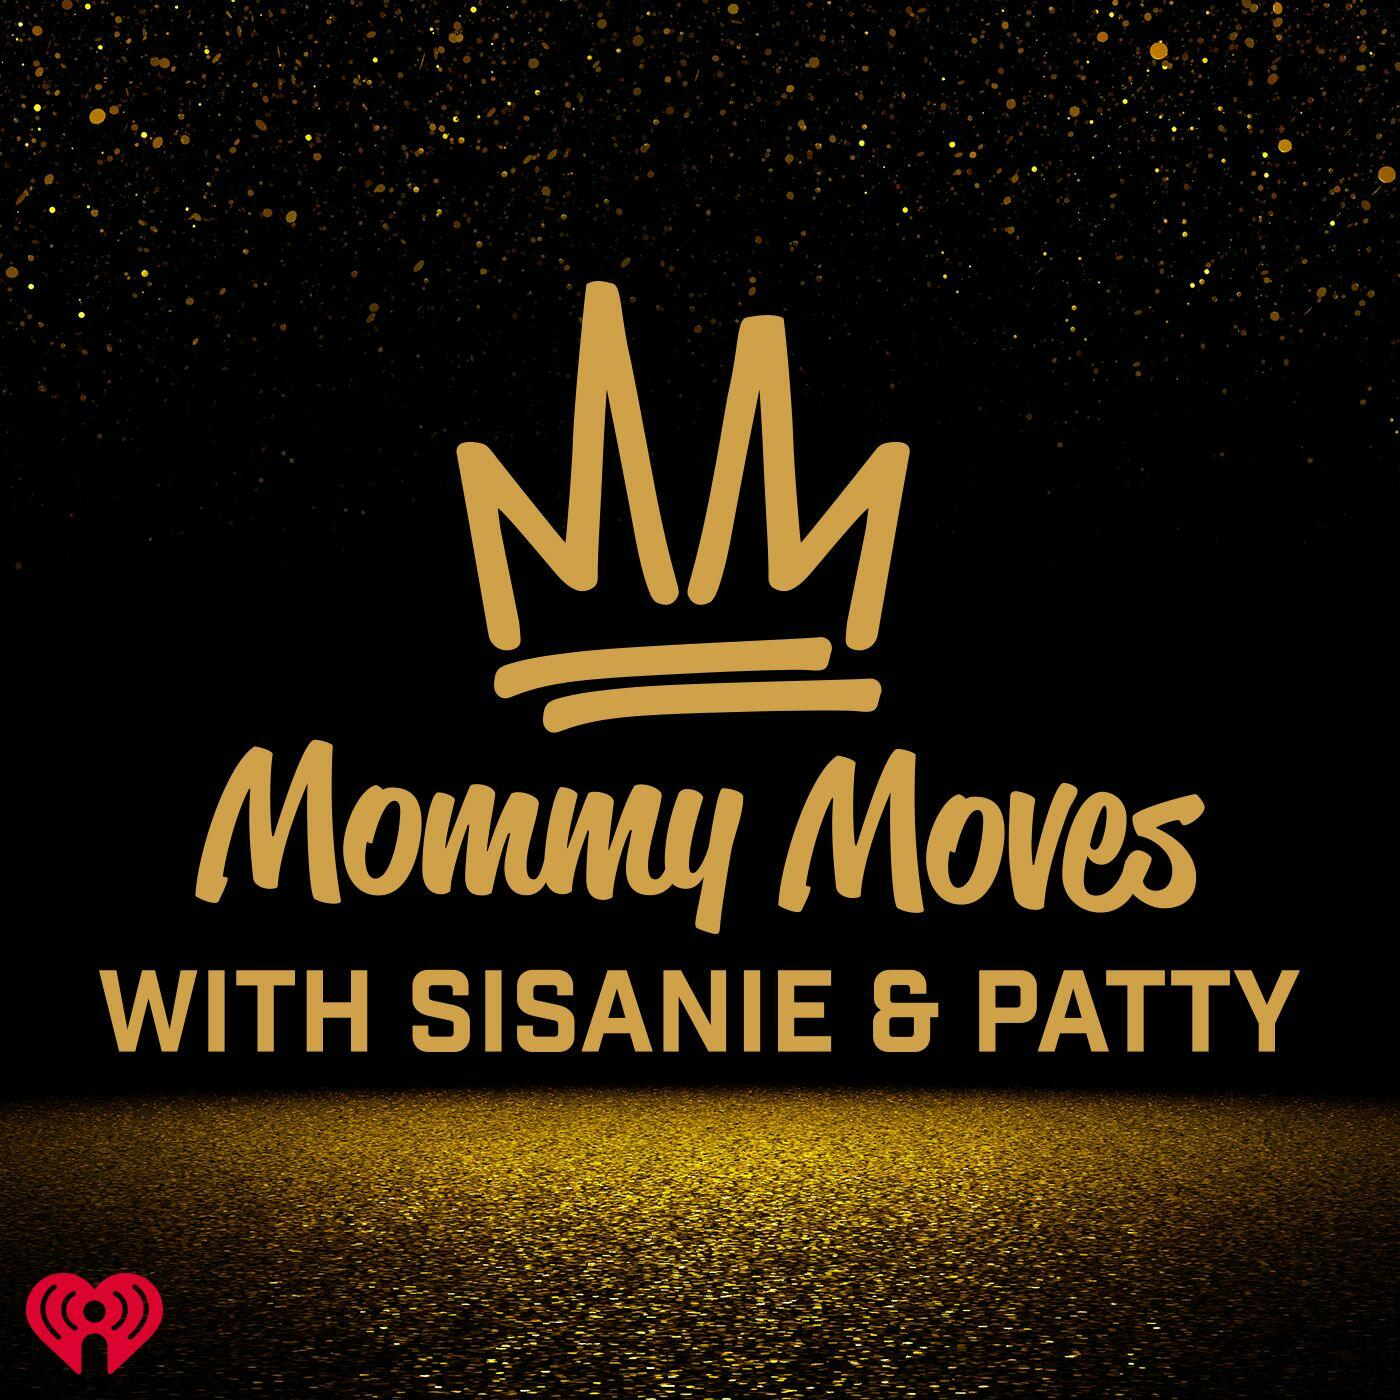 Listen Free to Mommy Moves with Sisanie and Patty on iHeartRadio Podcasts | iHeartRadio